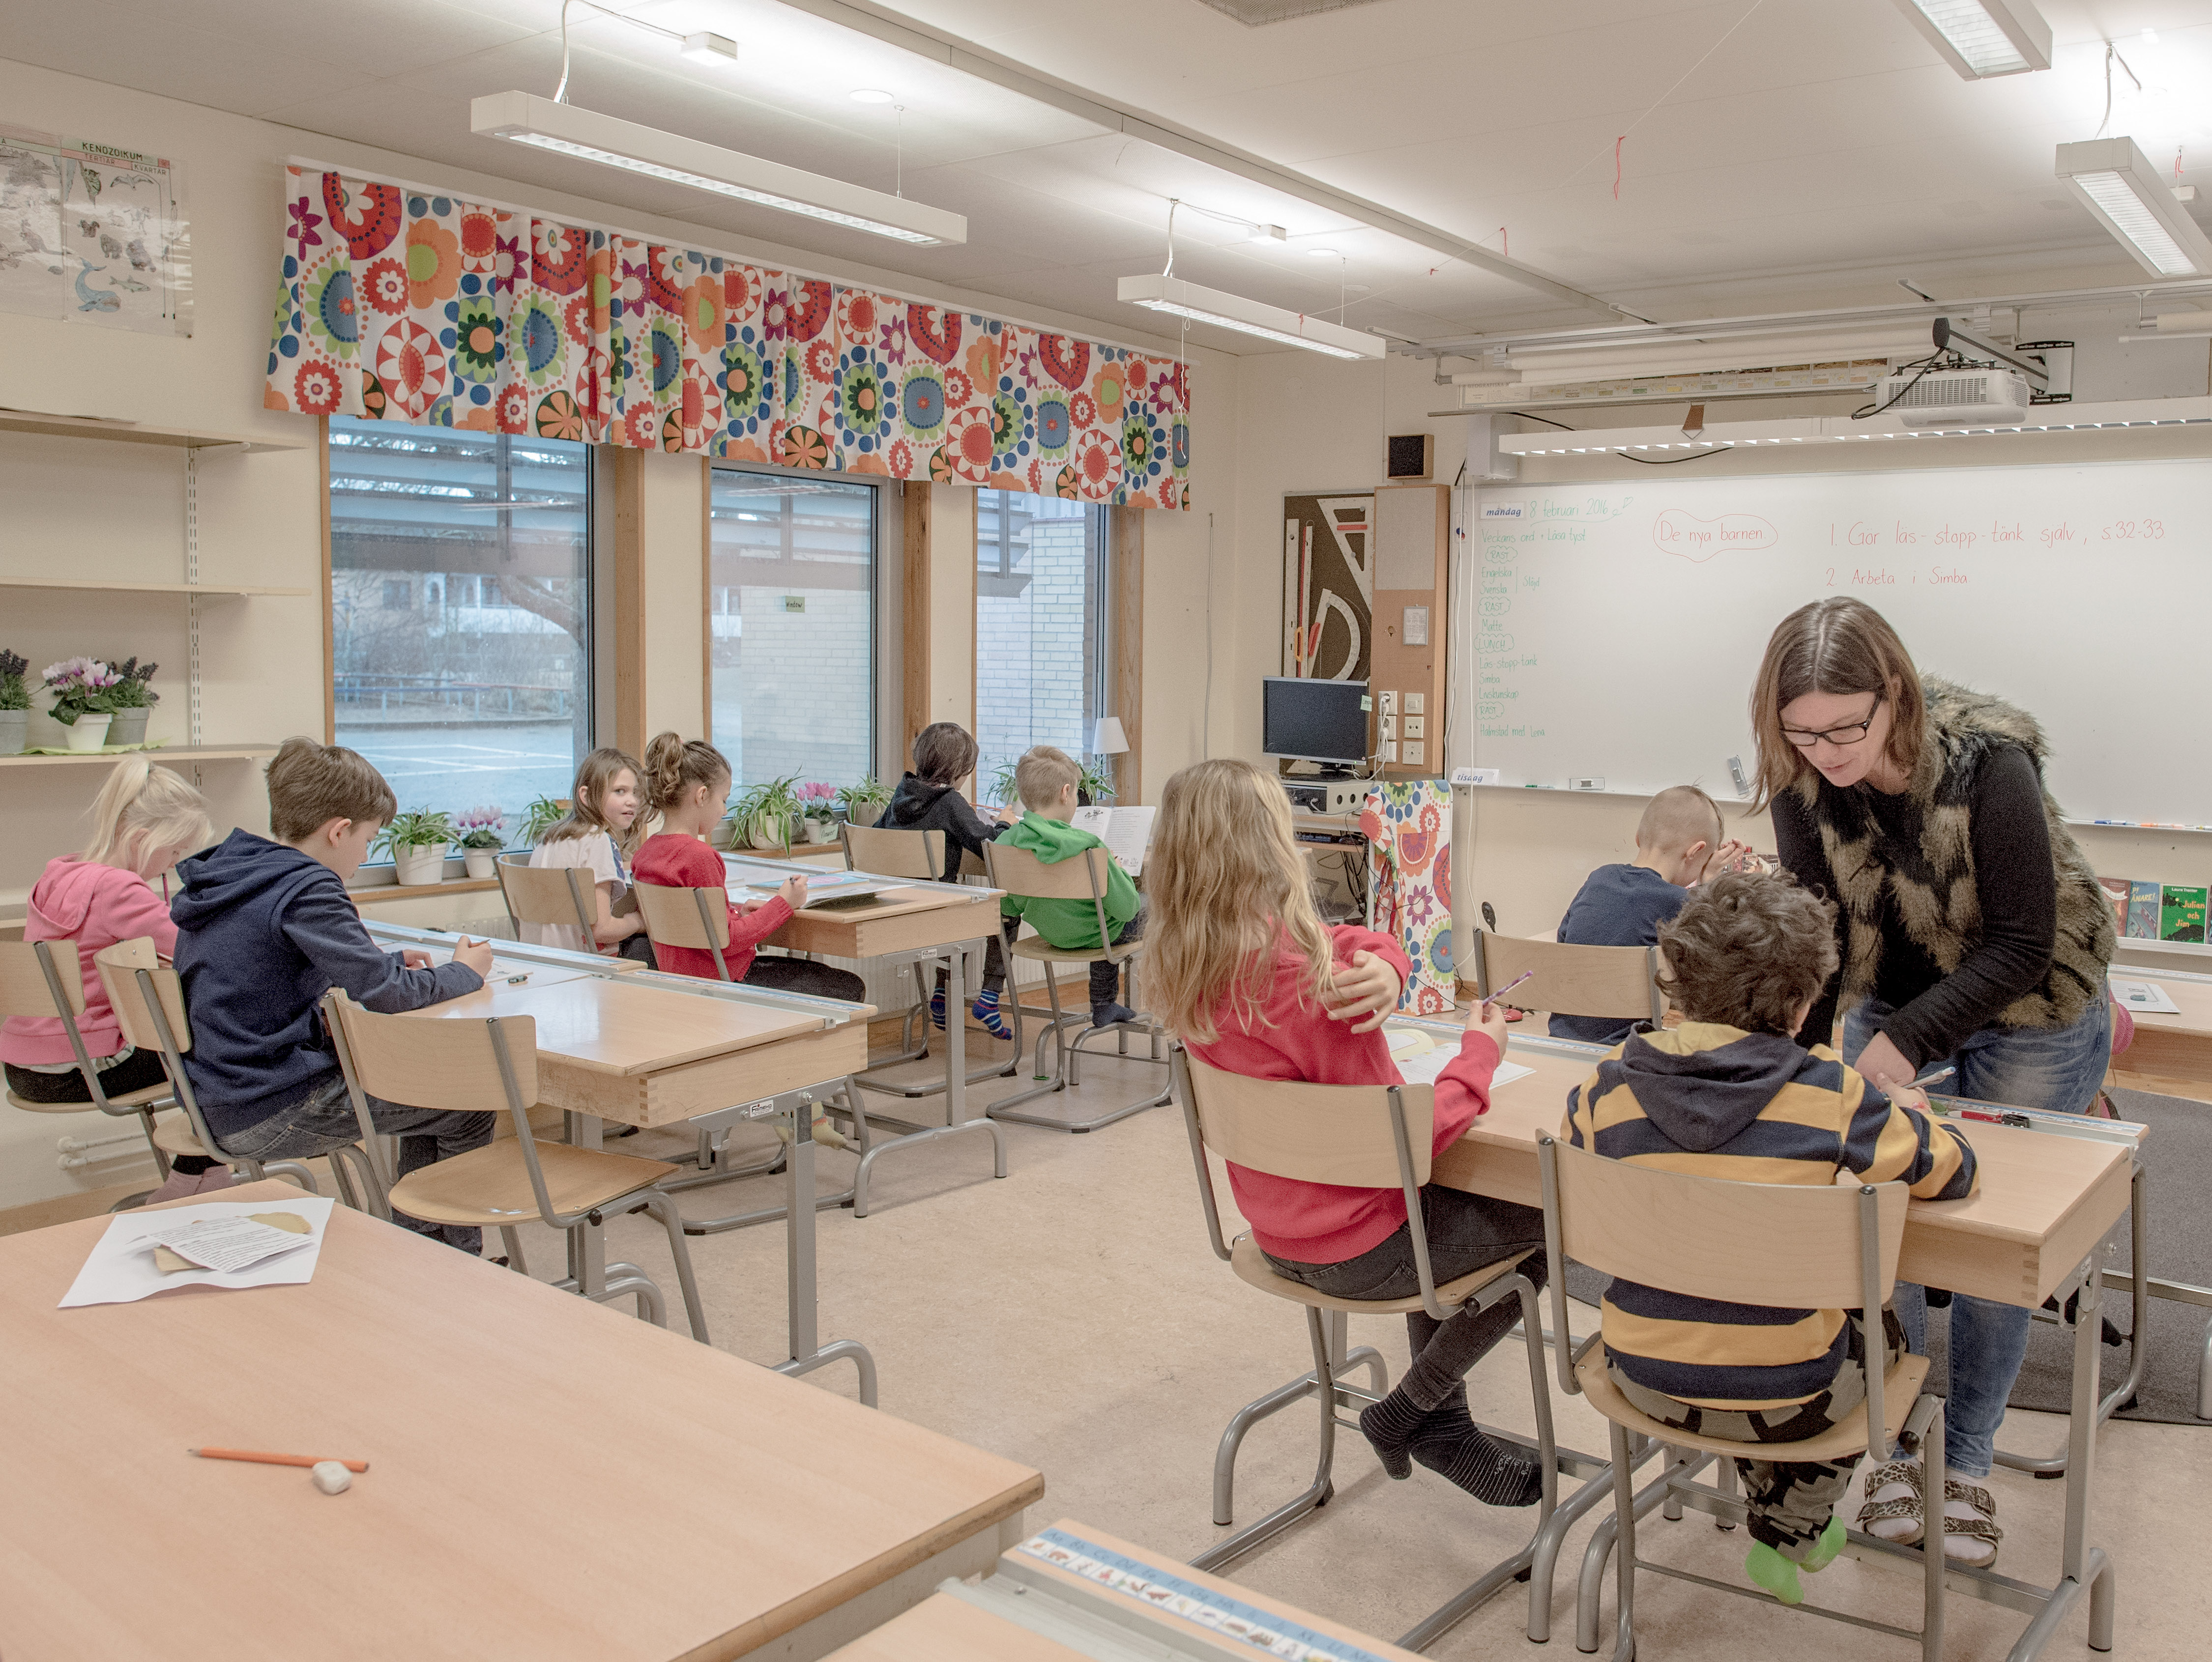 Swedish students are seen in a classroom of a school on February 8, 2016 in Halmstad, Sweden. (Photo by David Ramos/Getty Images)